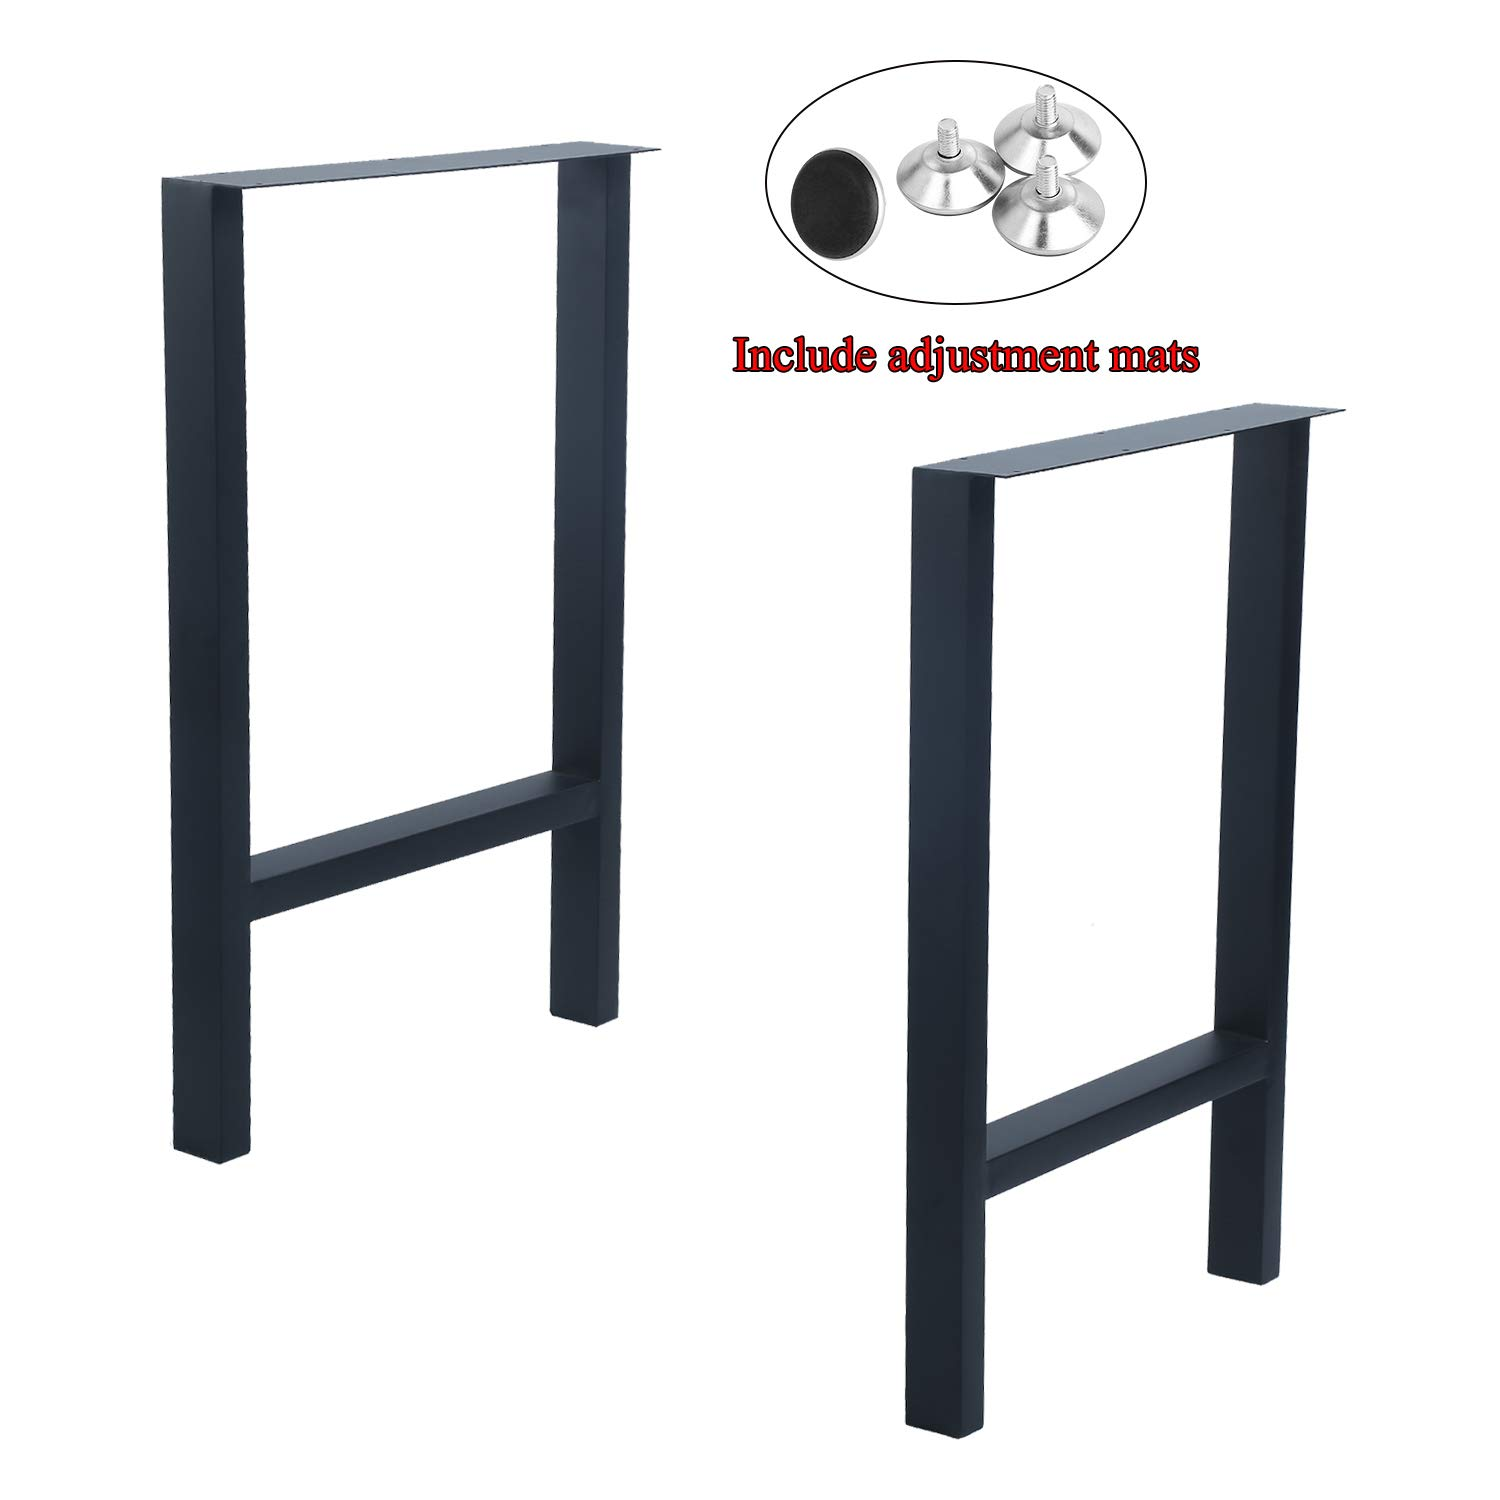 28''Height H-Shape Heavy Duty Furniture Legs,Outdoor Table Legs,Office Table Legs,Computer Desk Legs,Country Style Table Legs DIY